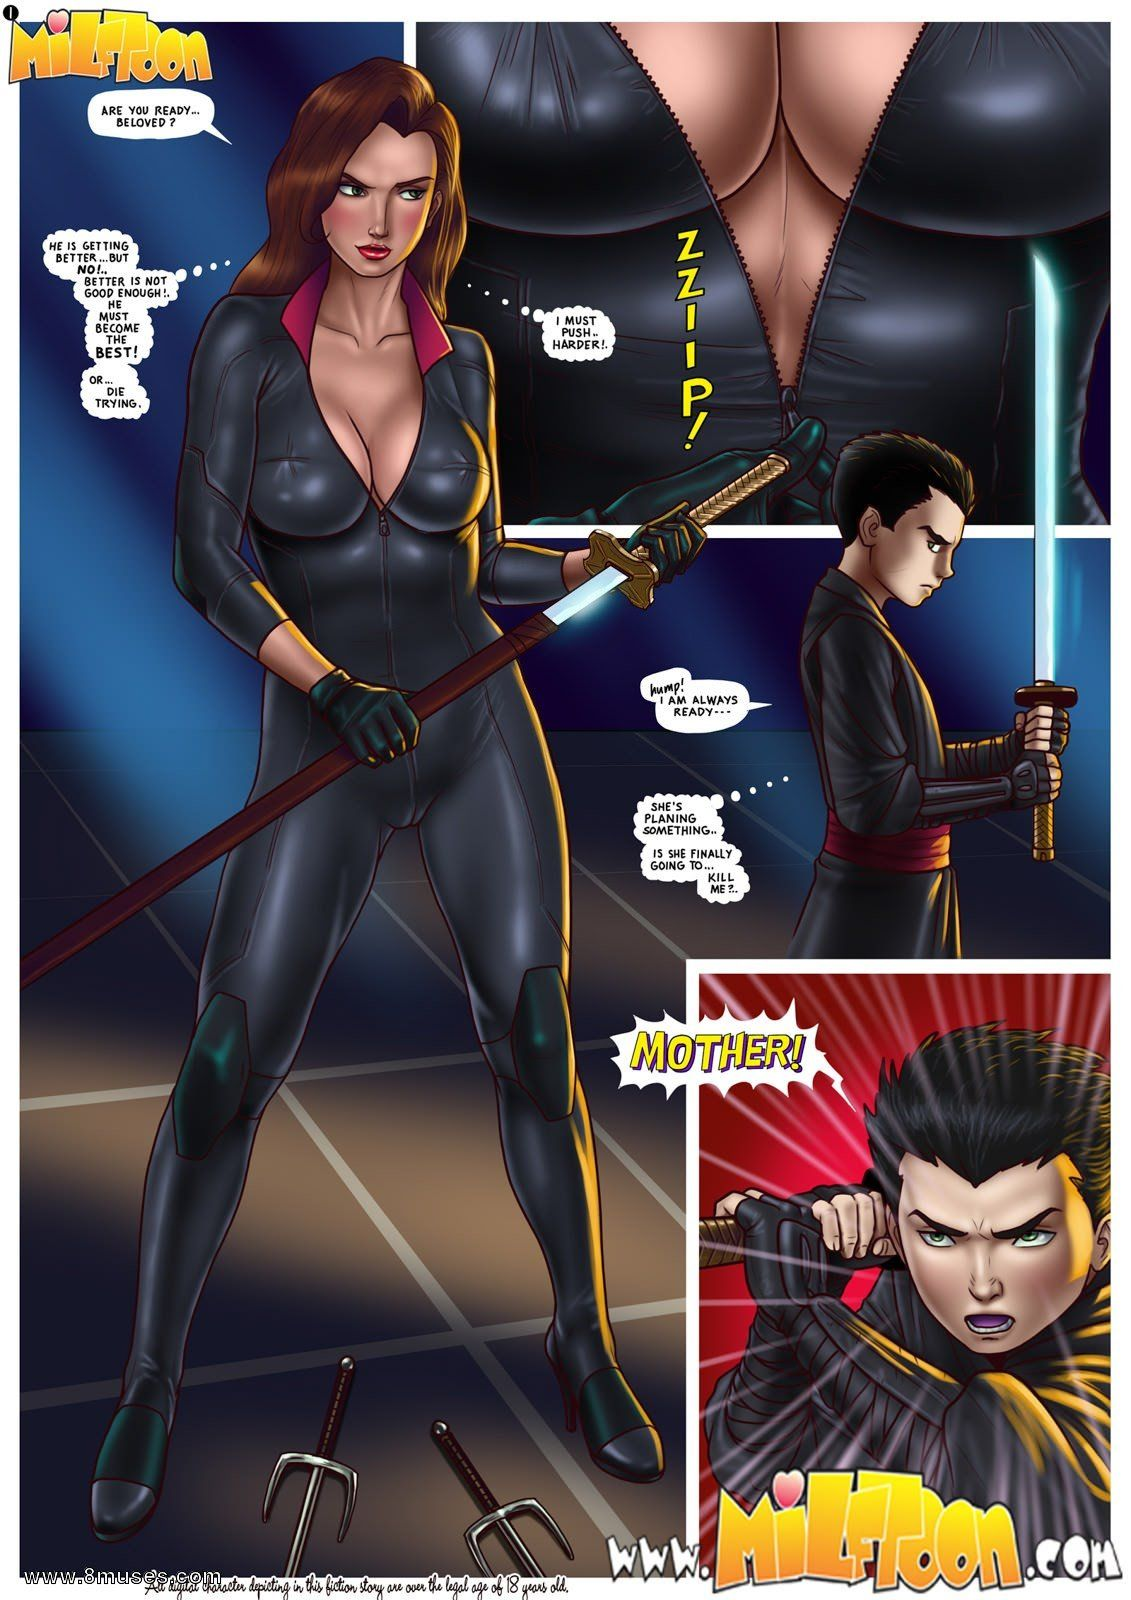 Incest Hentais Stunning incest comics archives - page 35 of 112 - hentai - rule34